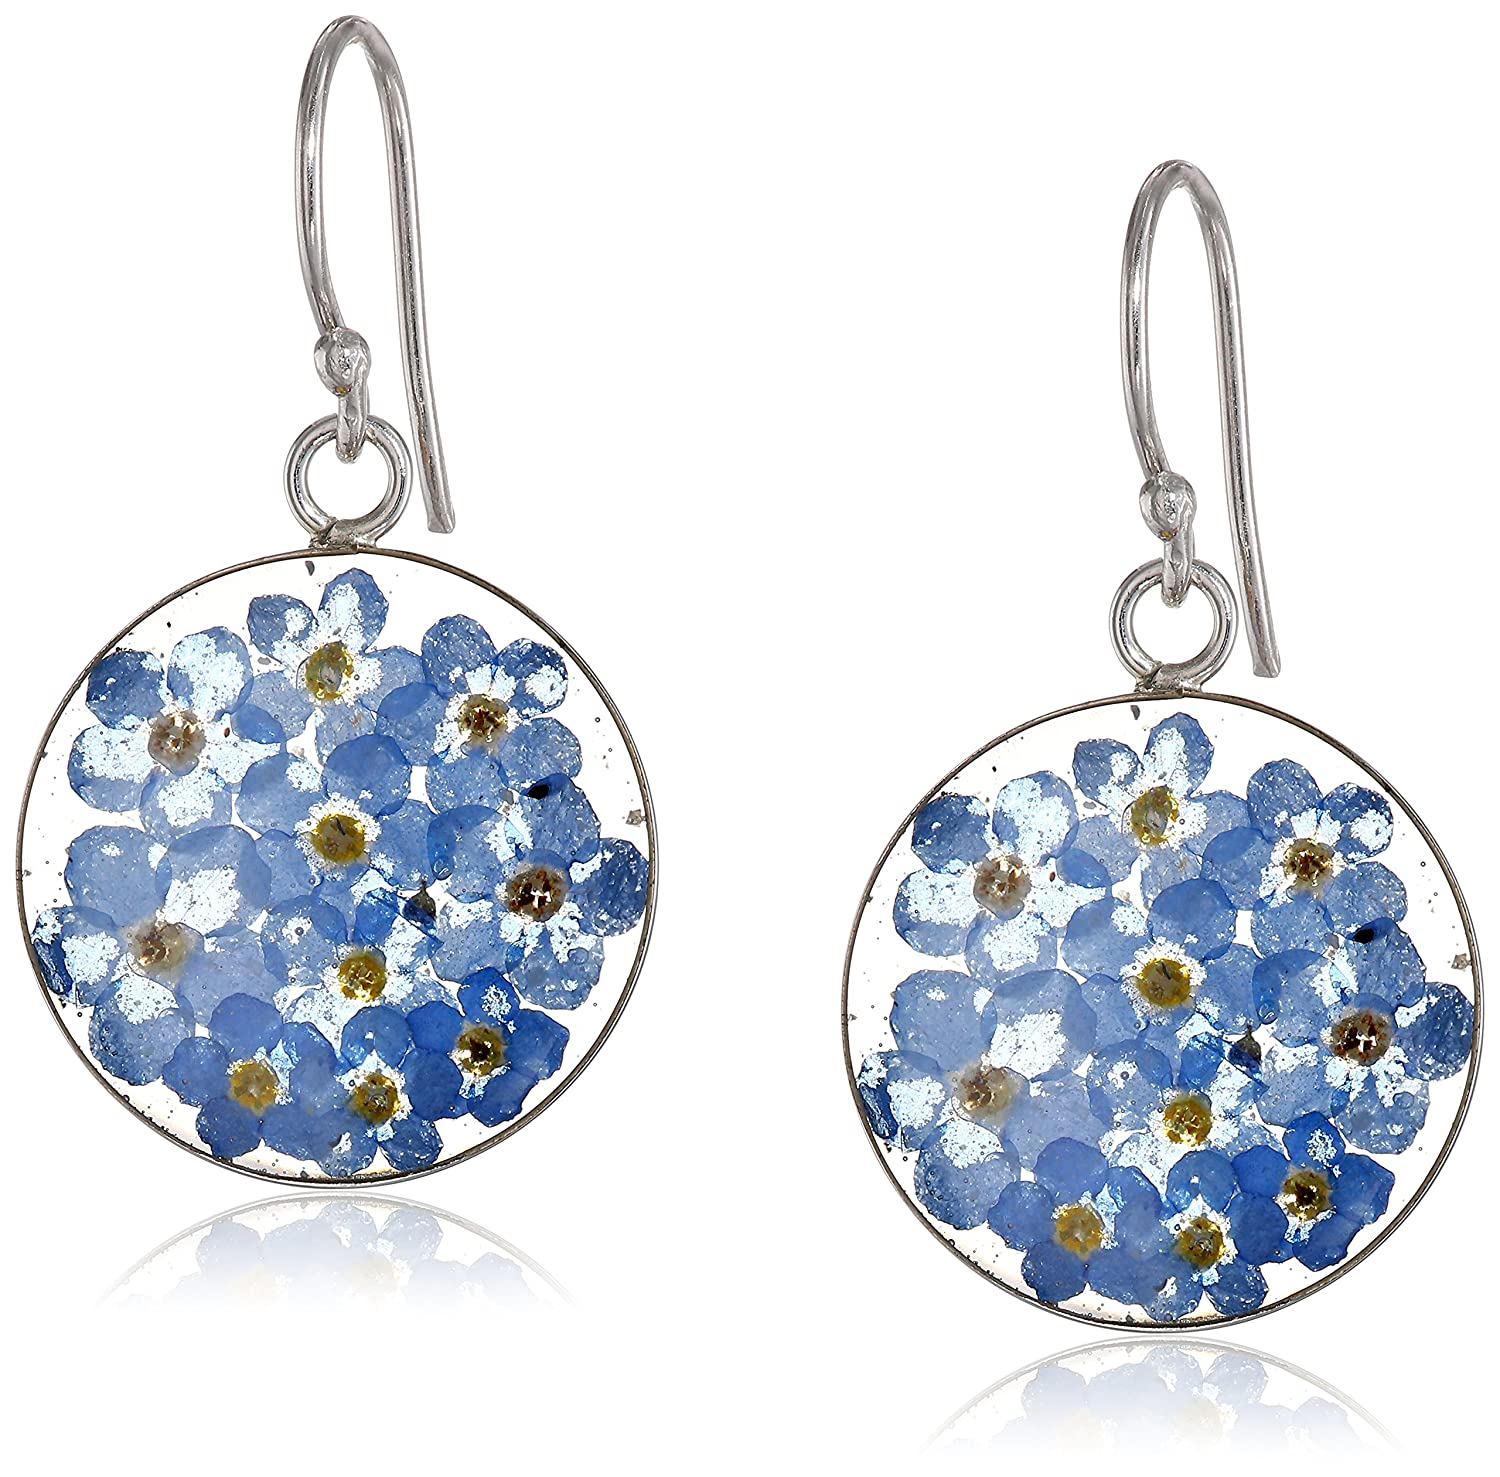 aa0d8df5d Amazon.com: Sterling Silver Blue Pressed Flower Circle Drop Earrings:  Jewelry